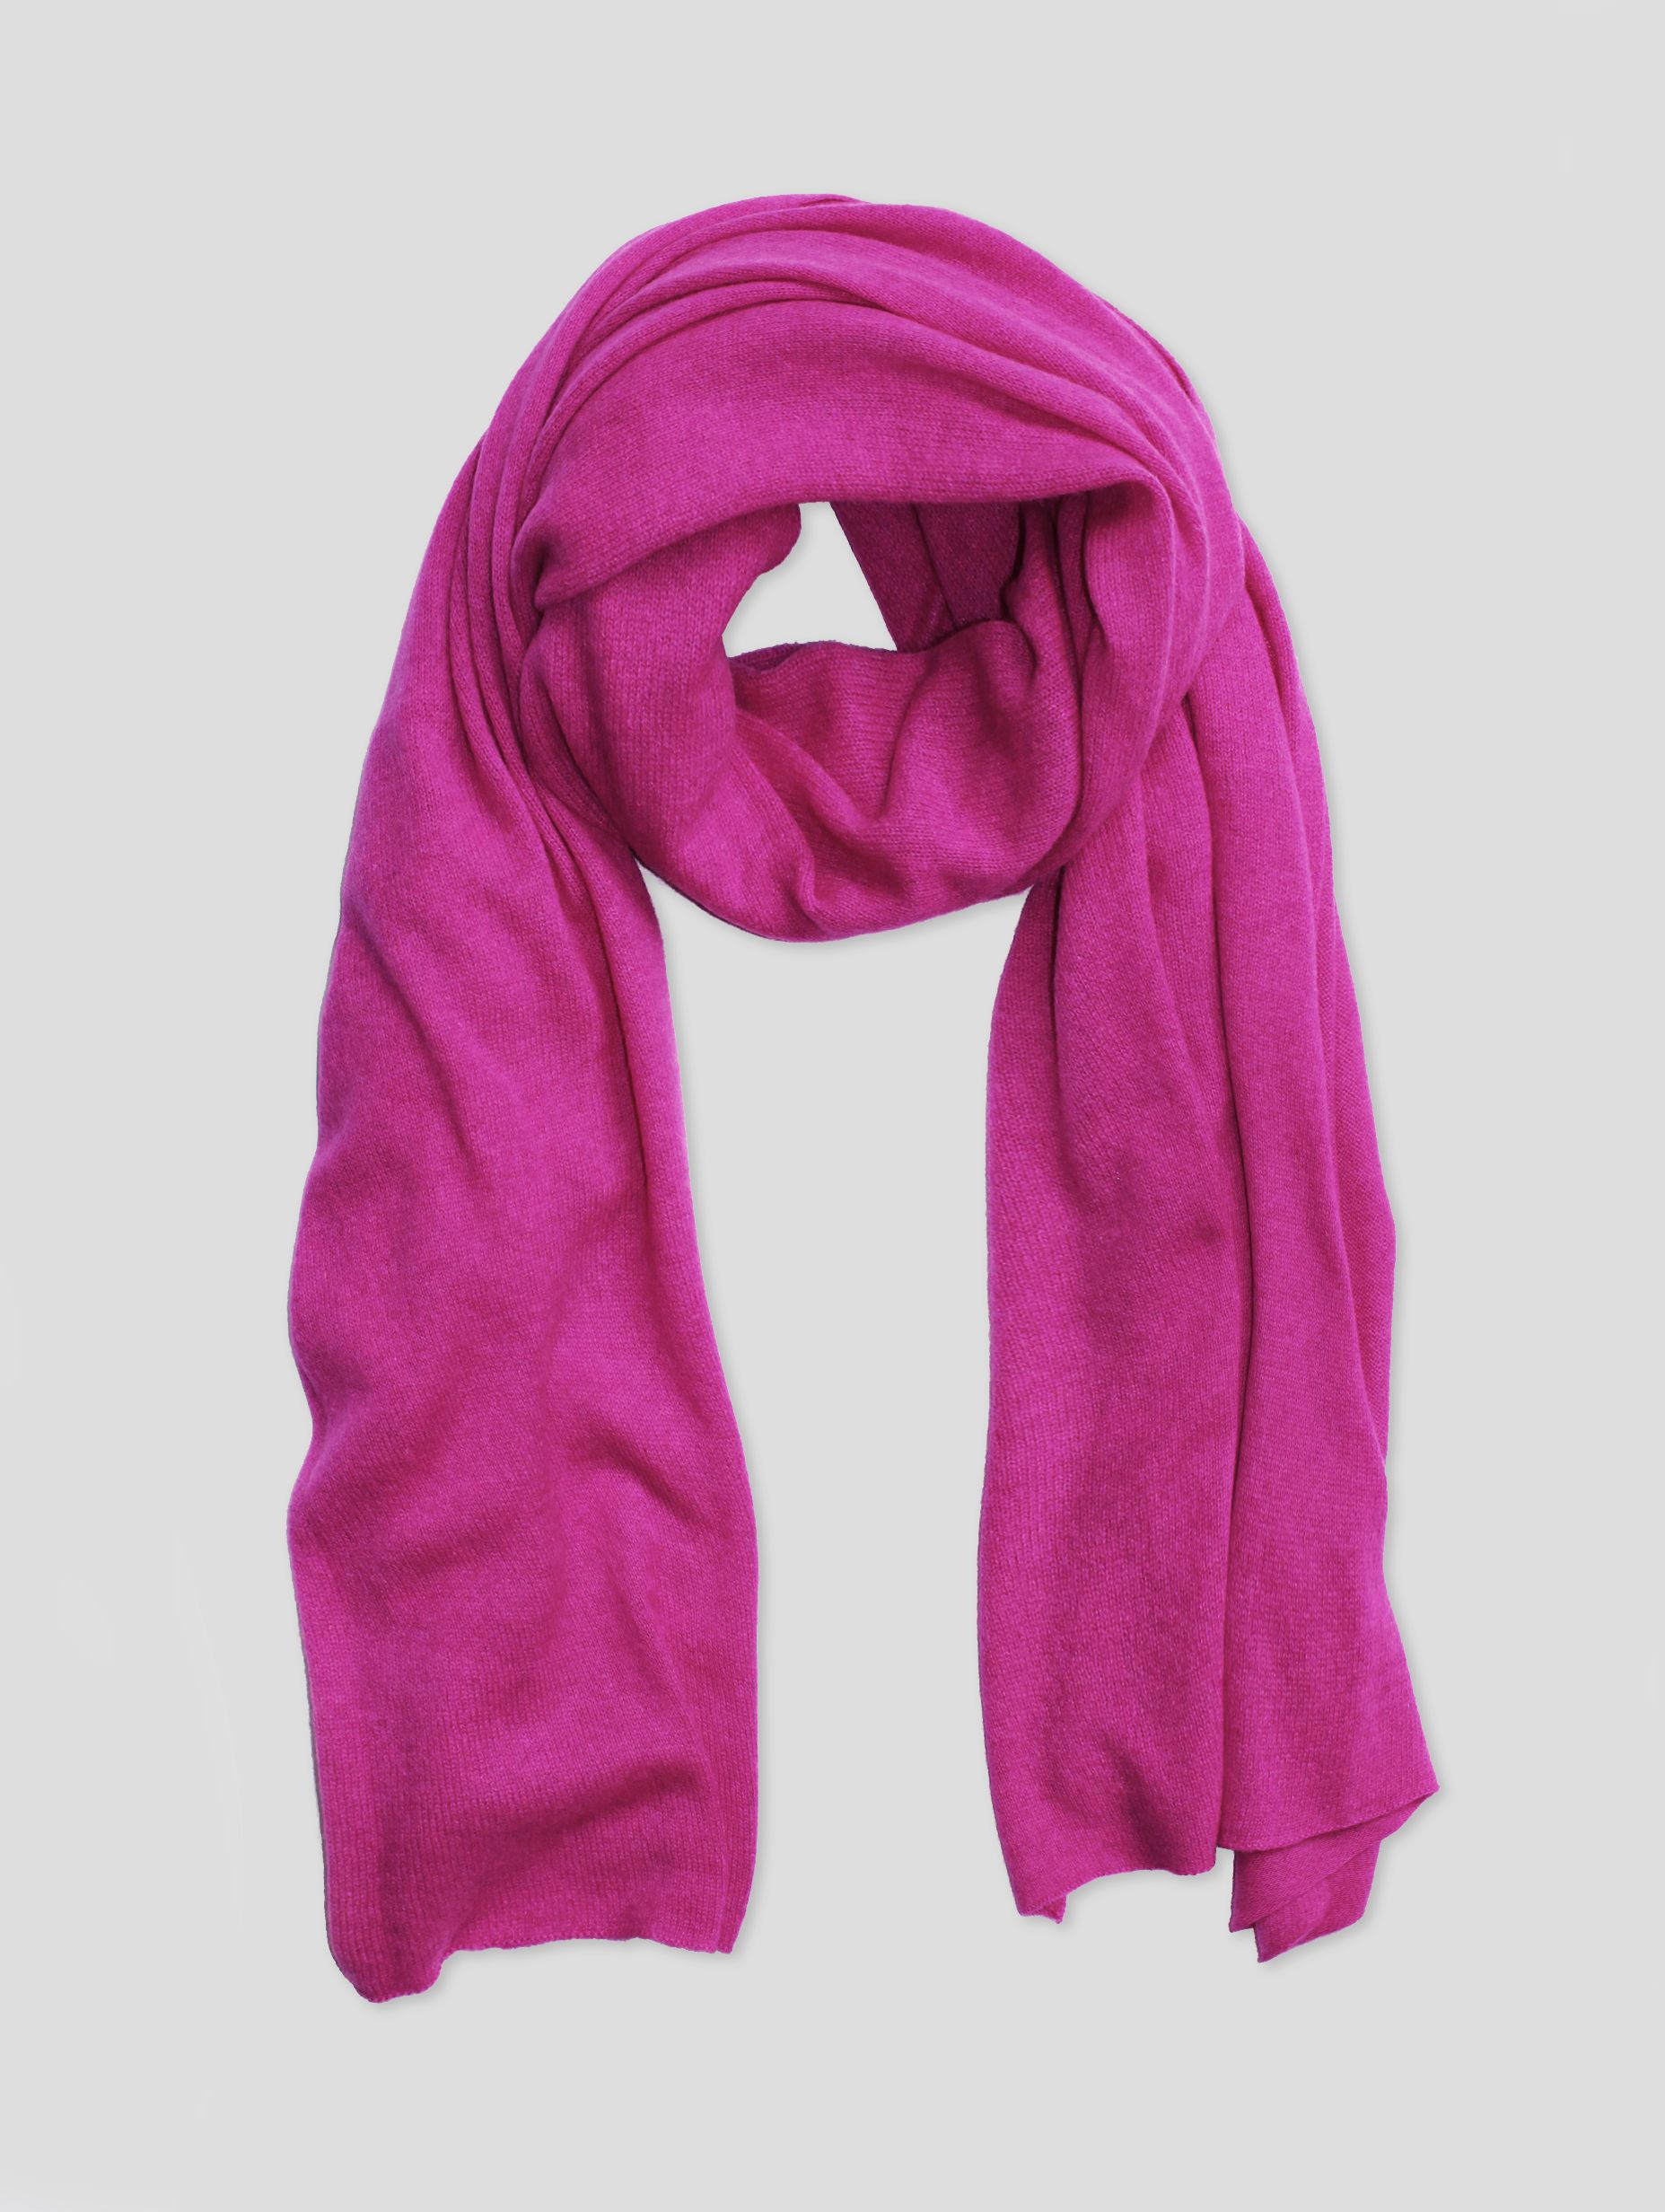 b5474e2be3 The Travel Wrap    Bright Fuchsia Heather